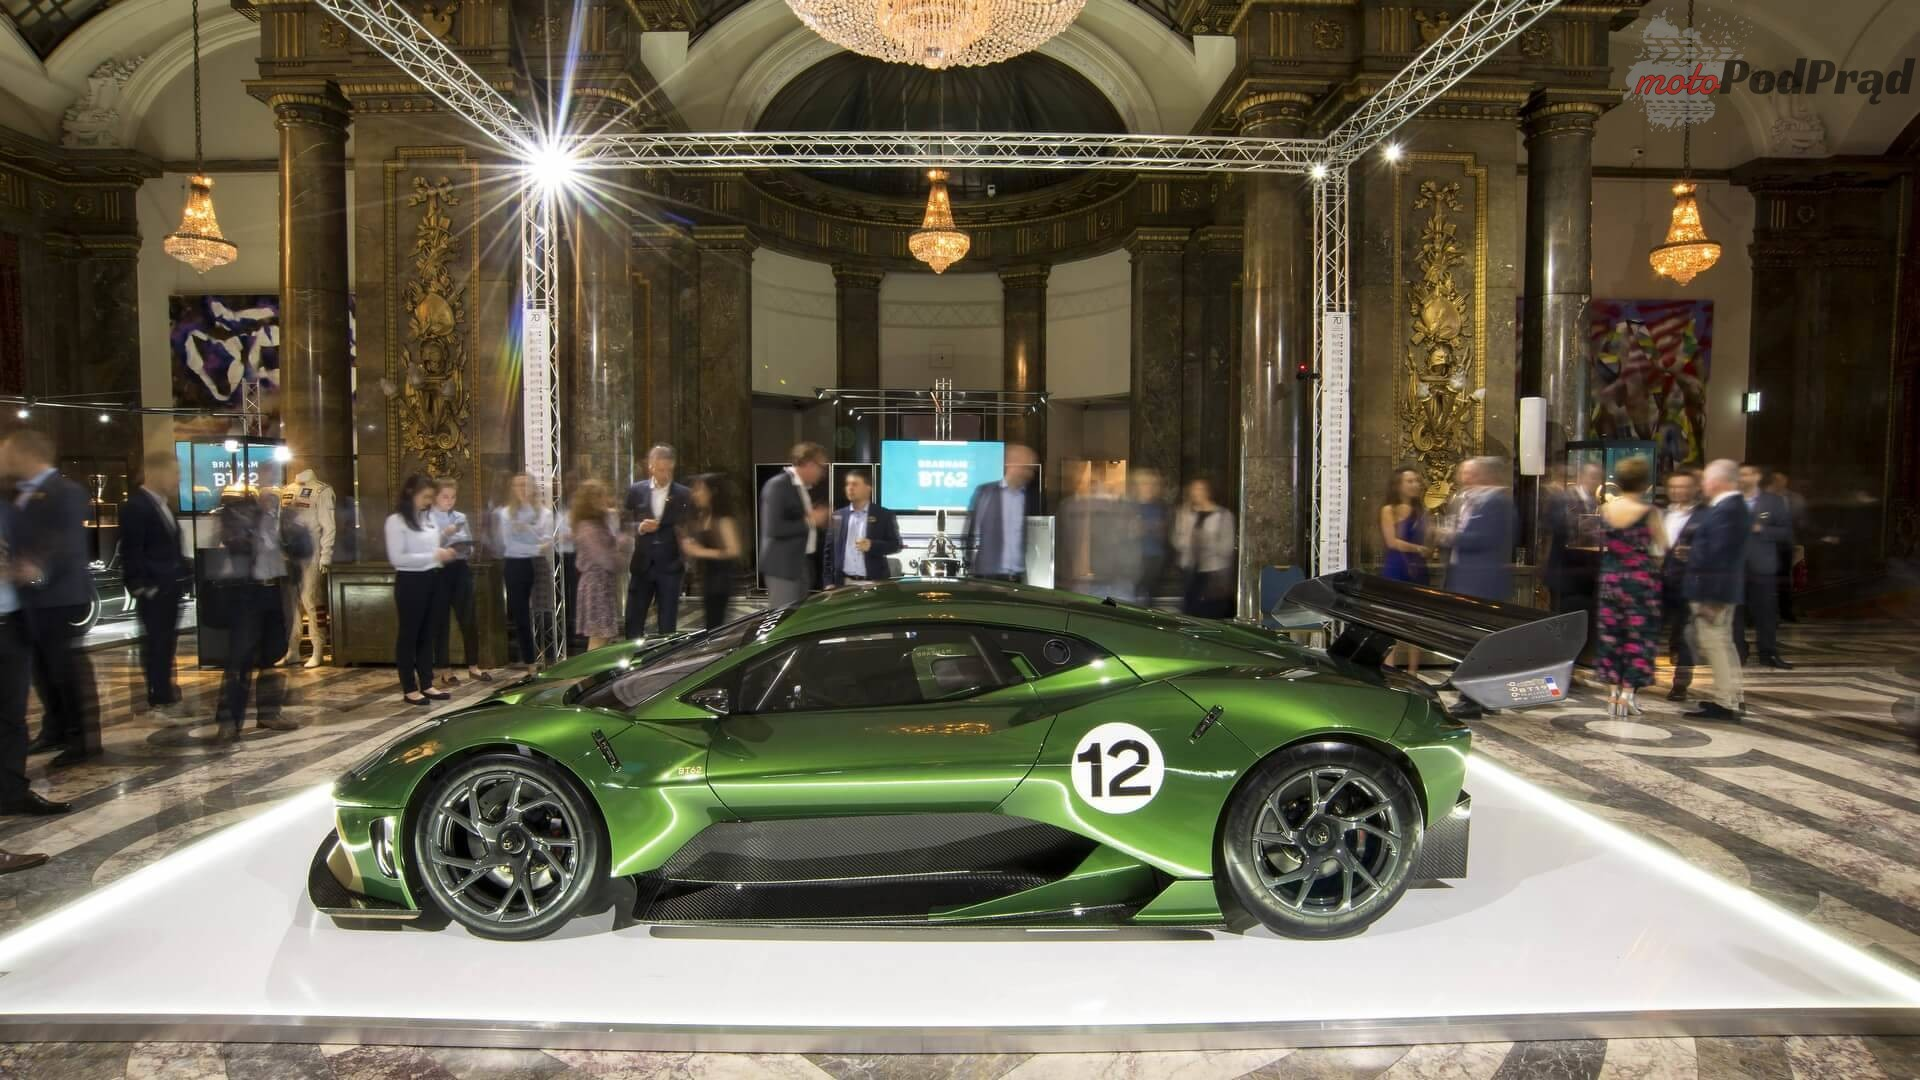 brabham bt62 Goodwood Festival of Speed   spodziewane premiery